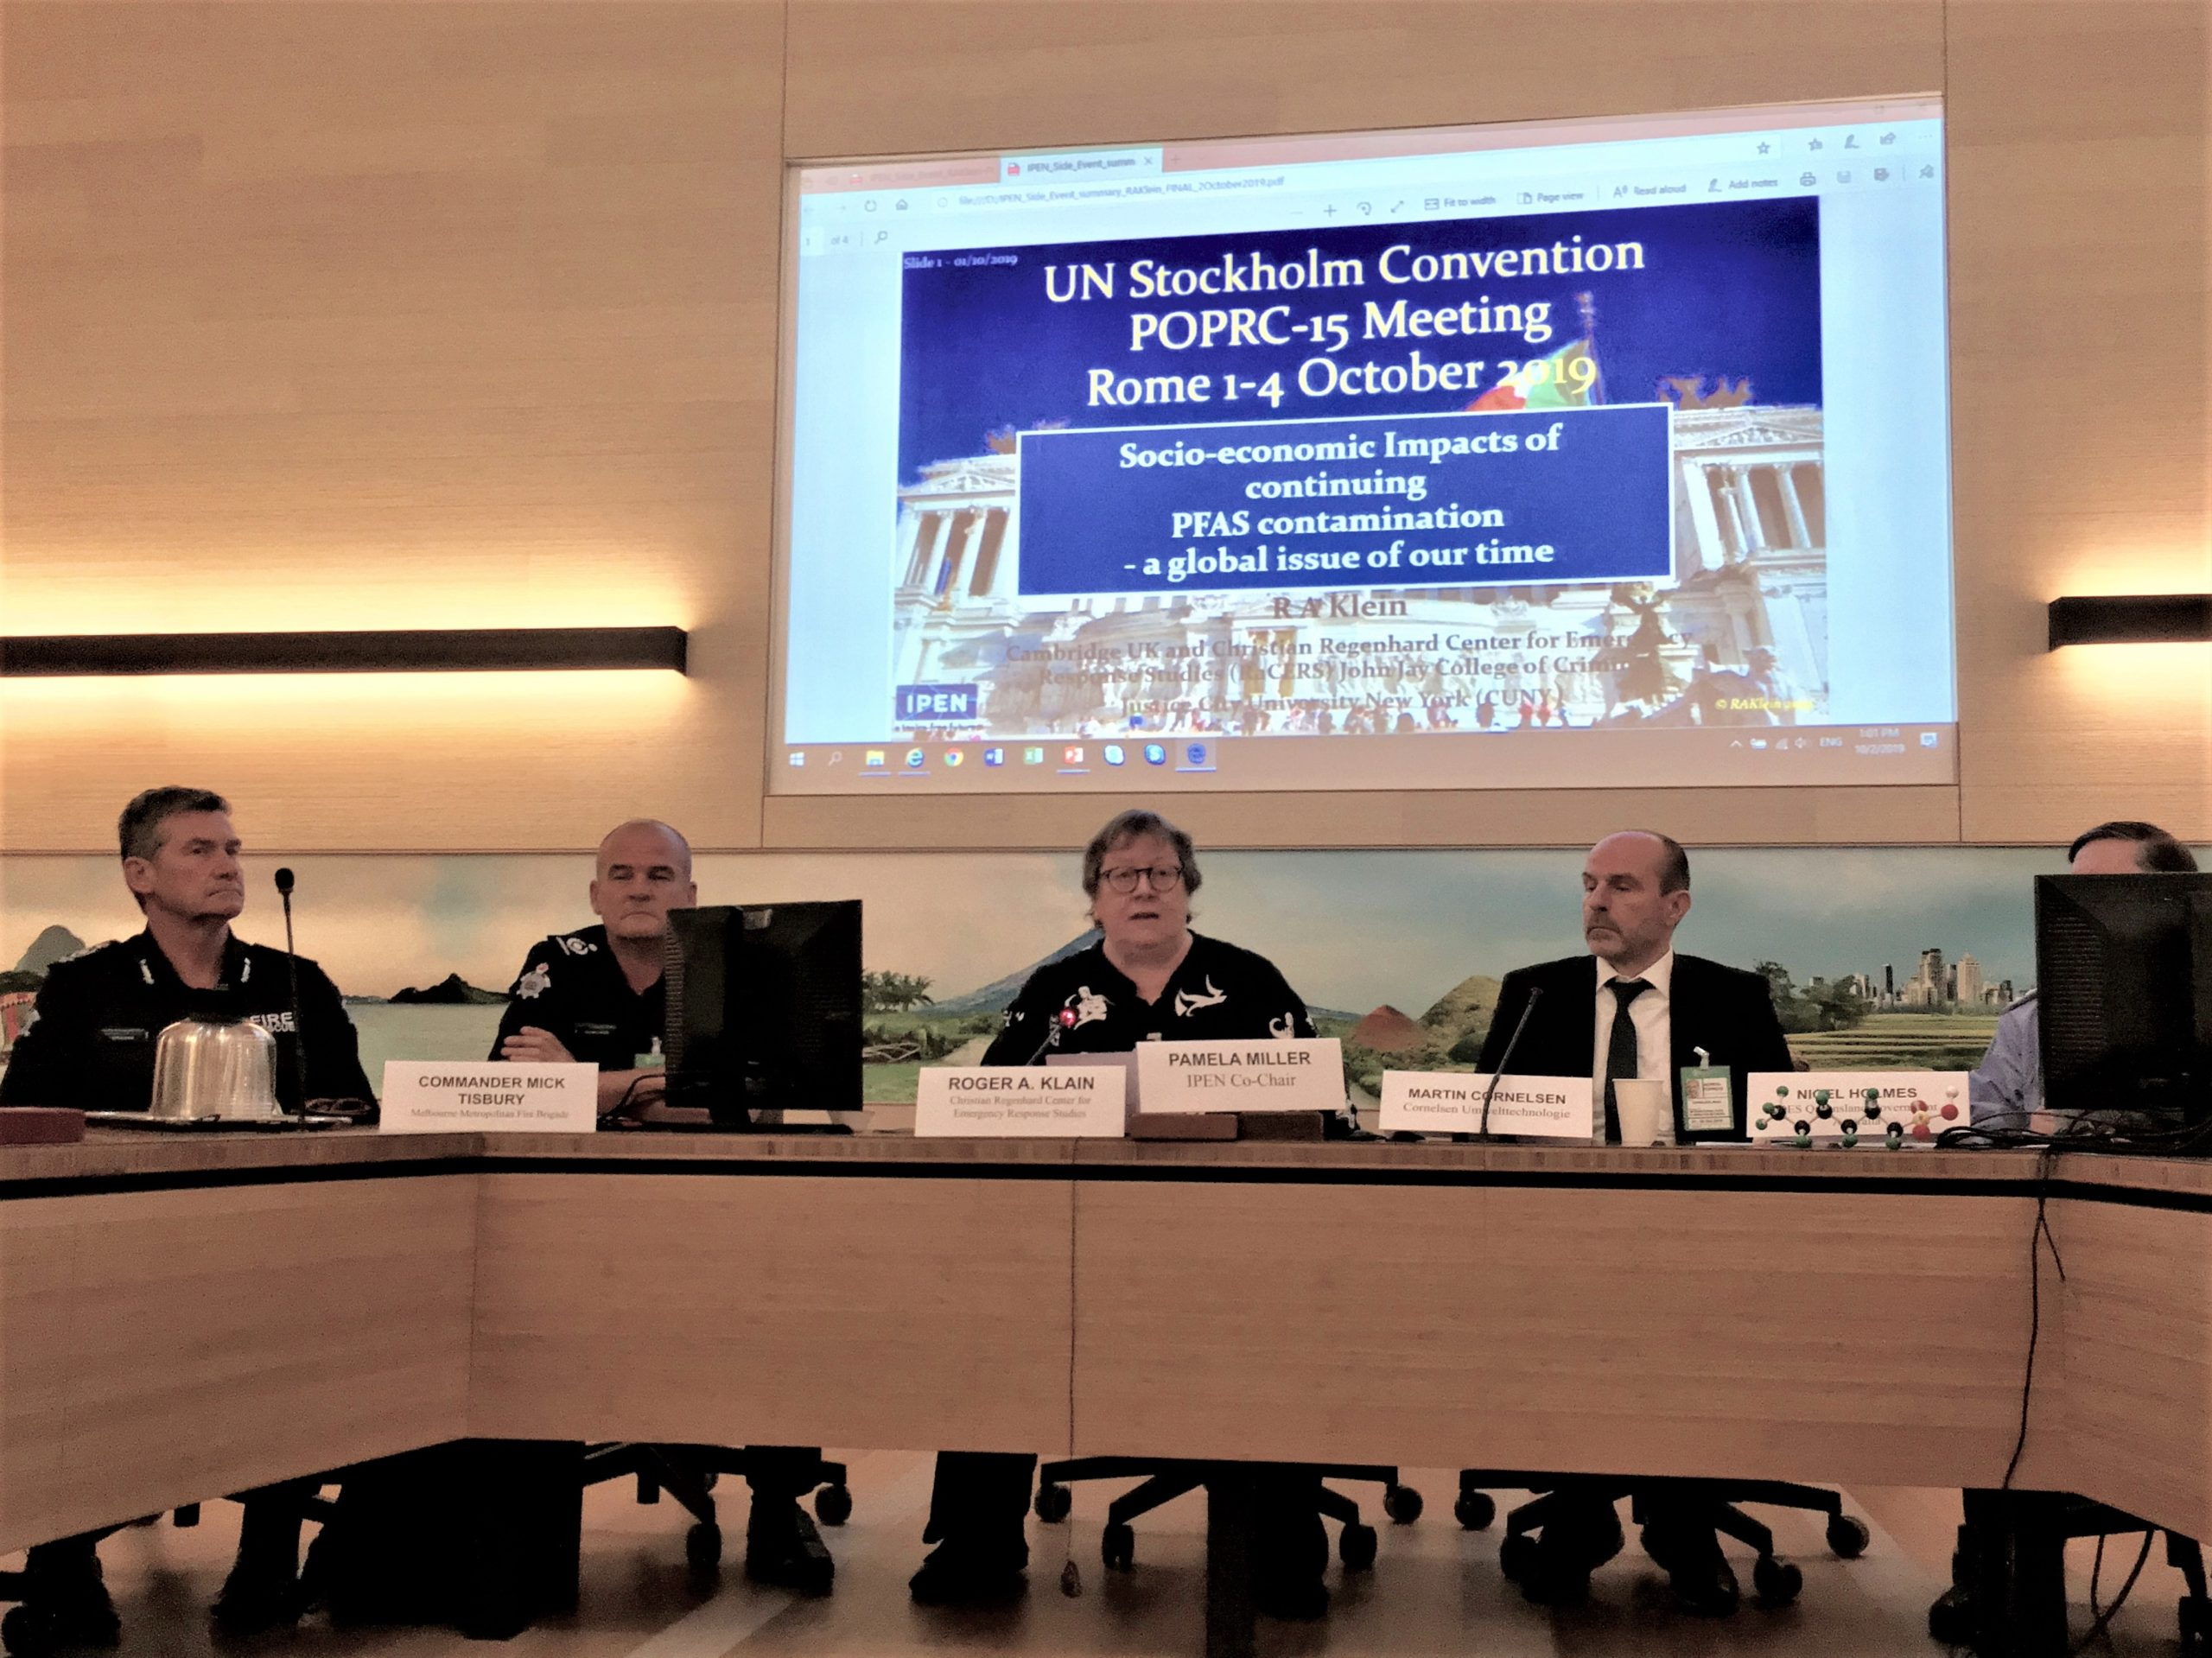 UN-Stockholm Convention POPRC-15 MEETING ROME 1 – 4 Oktober 2019